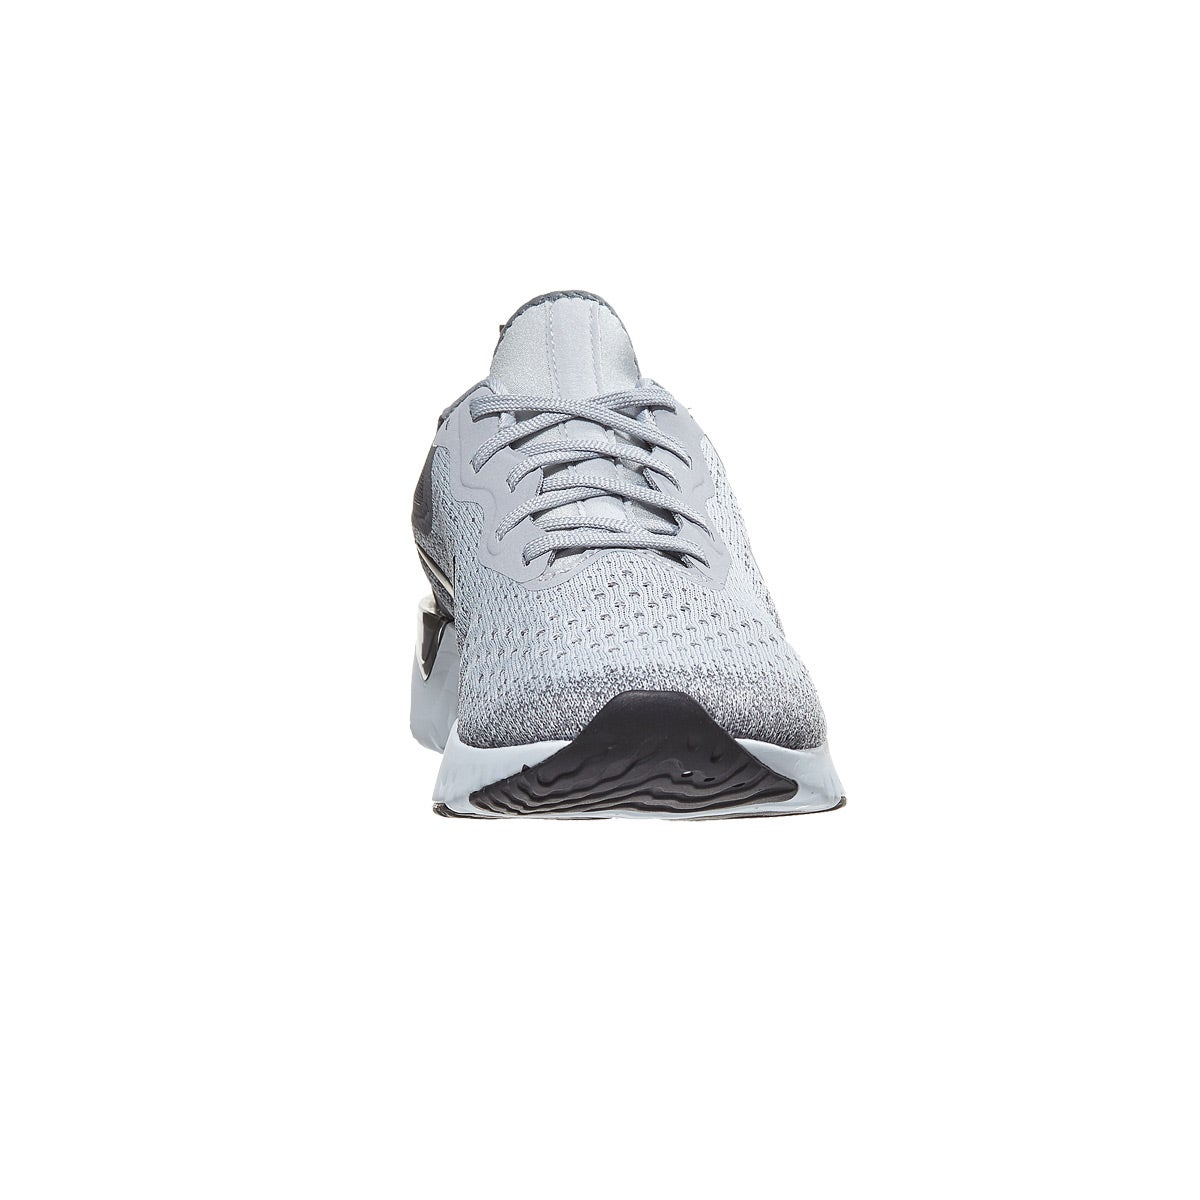 Nike Odyssey React Women's Shoes Wolf Grey/Black/Grey 360° View | Running  Warehouse.